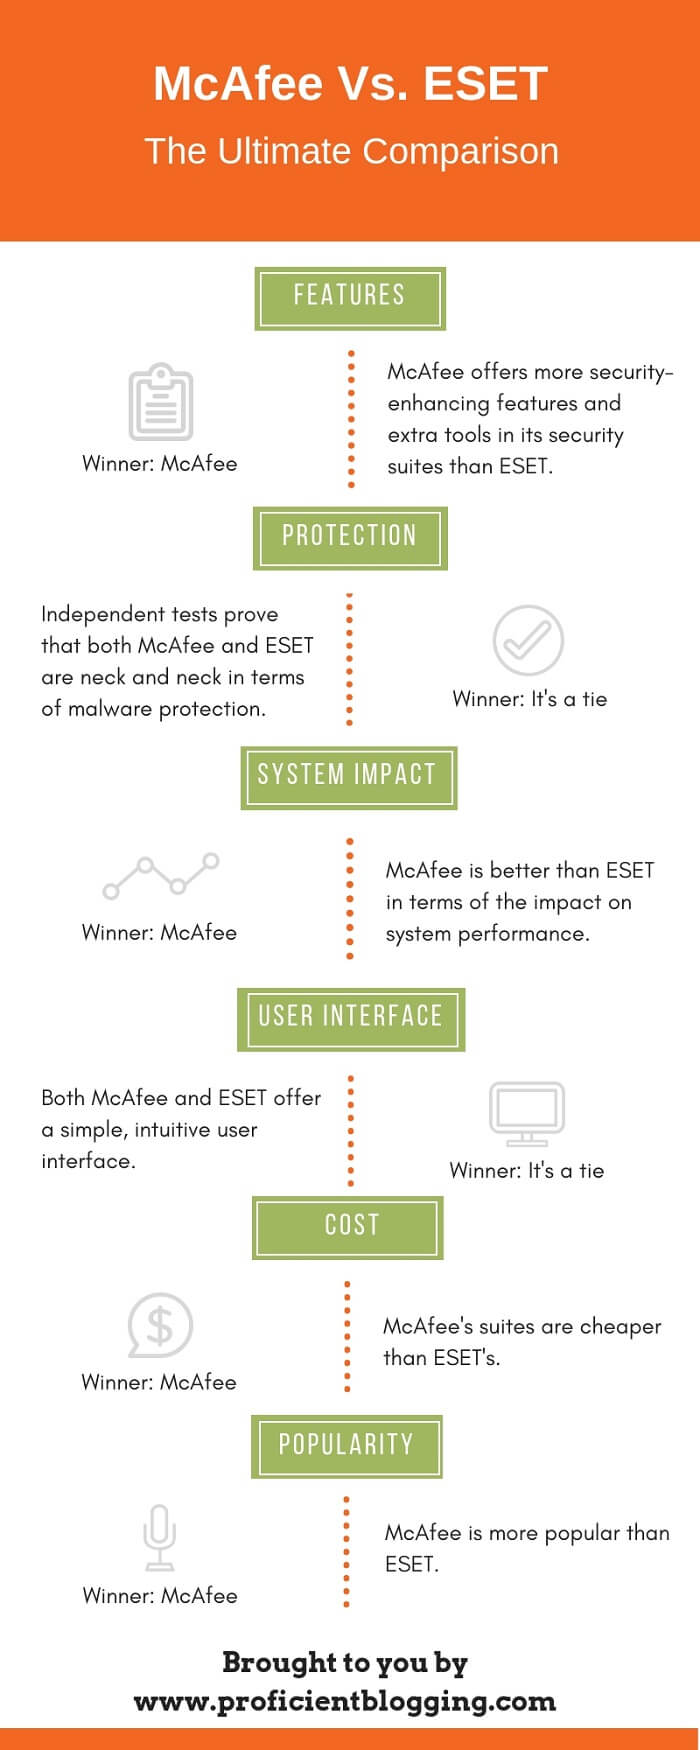 McAfee Vs. ESET Comparison Summary